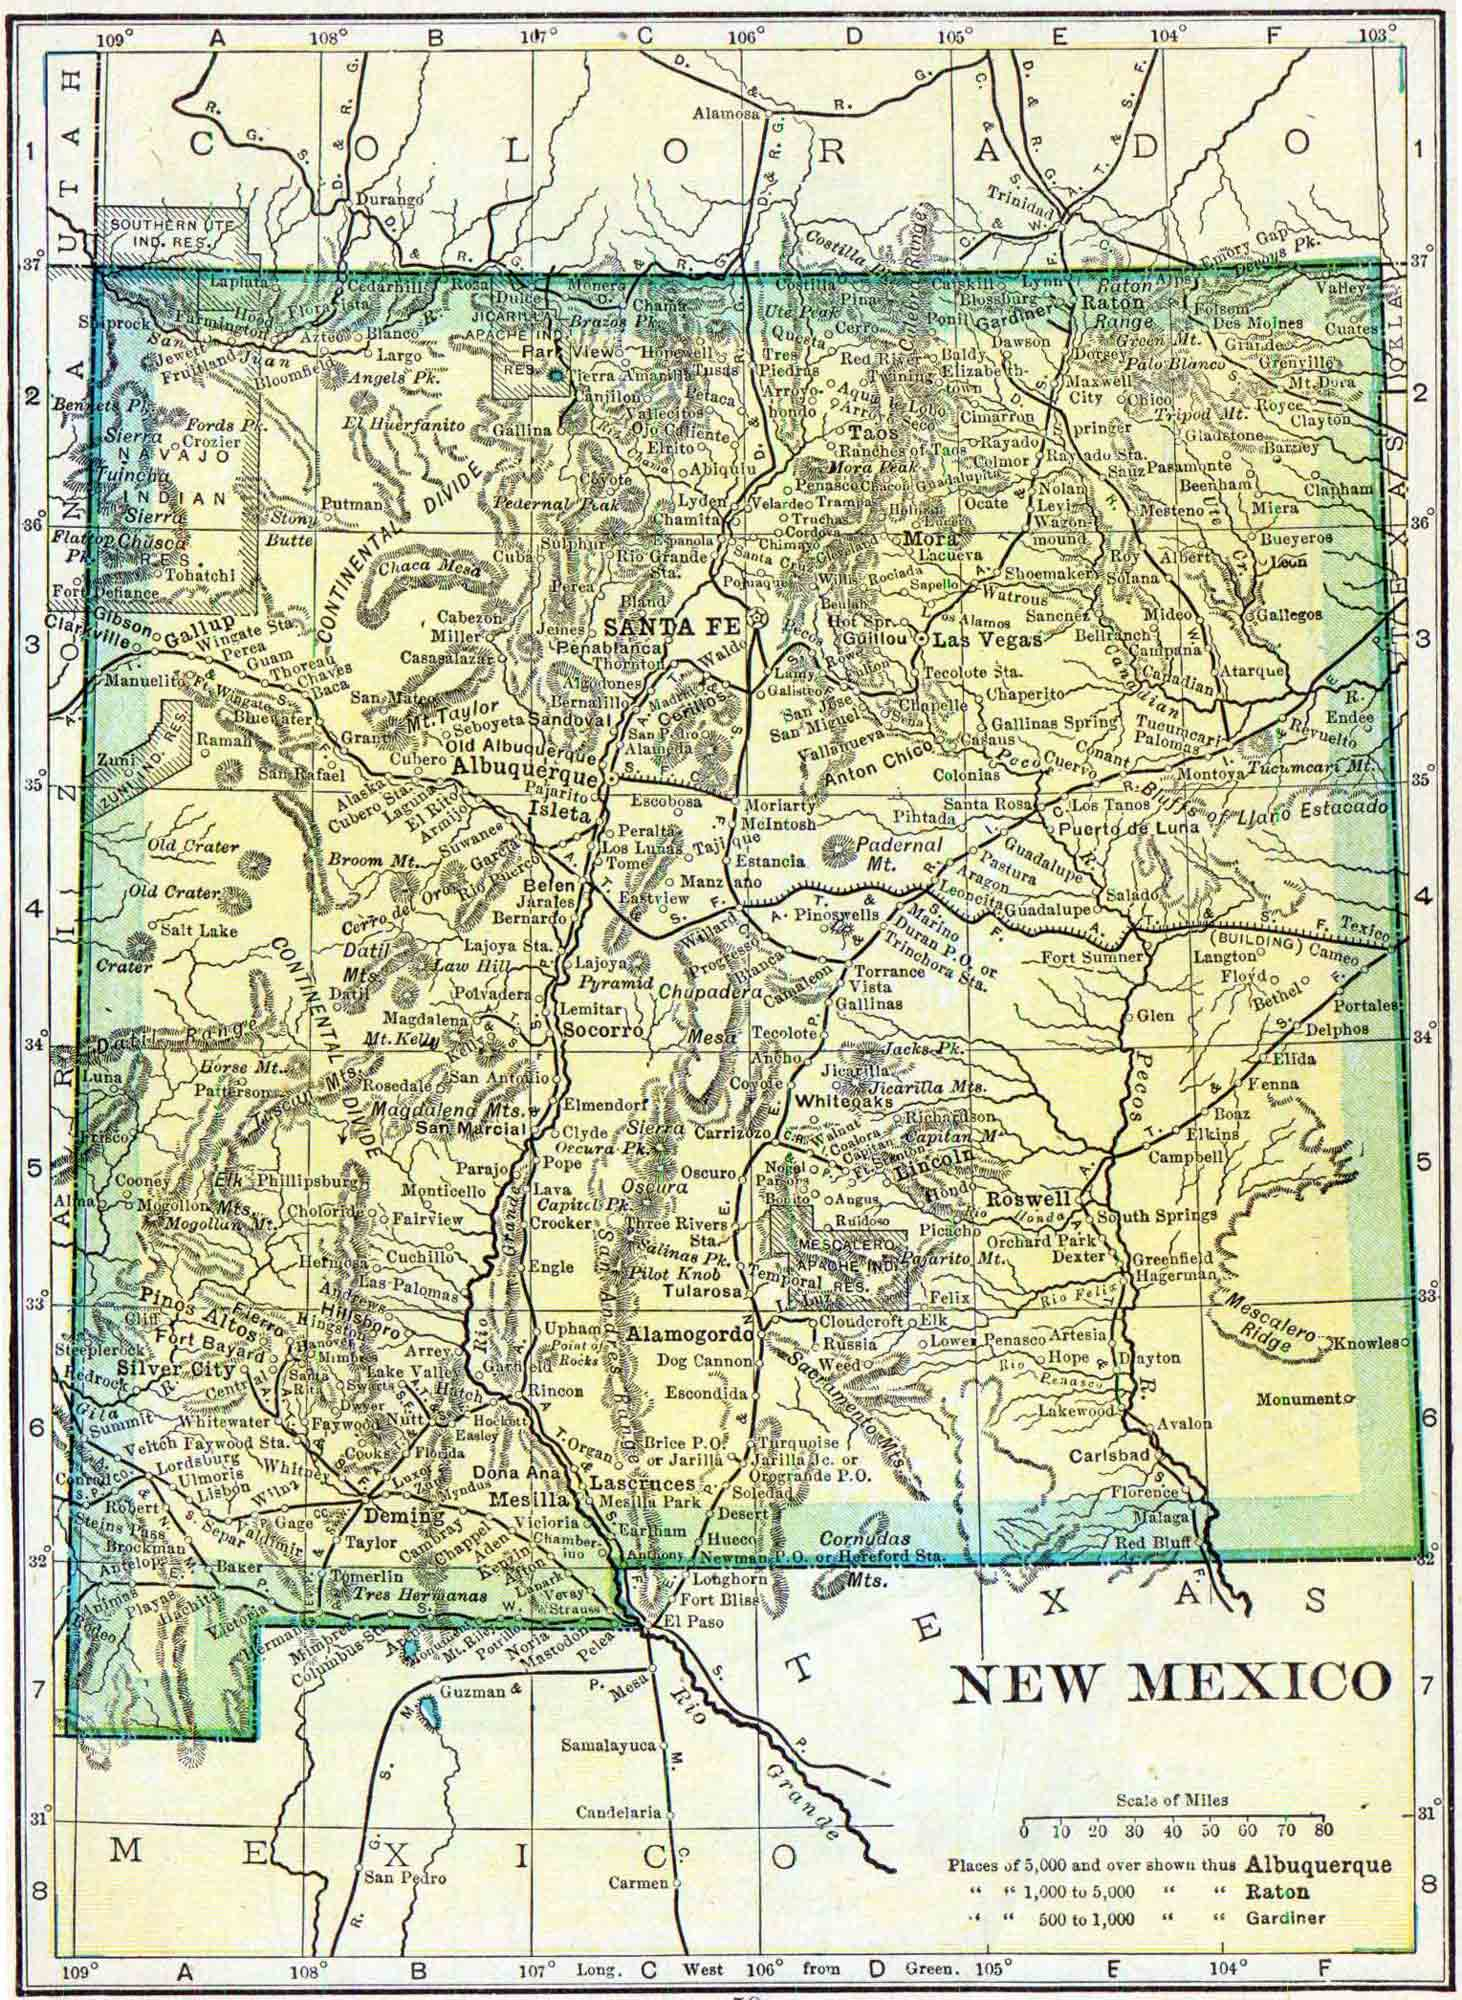 1910 New Mexico Census Map Access Genealogy